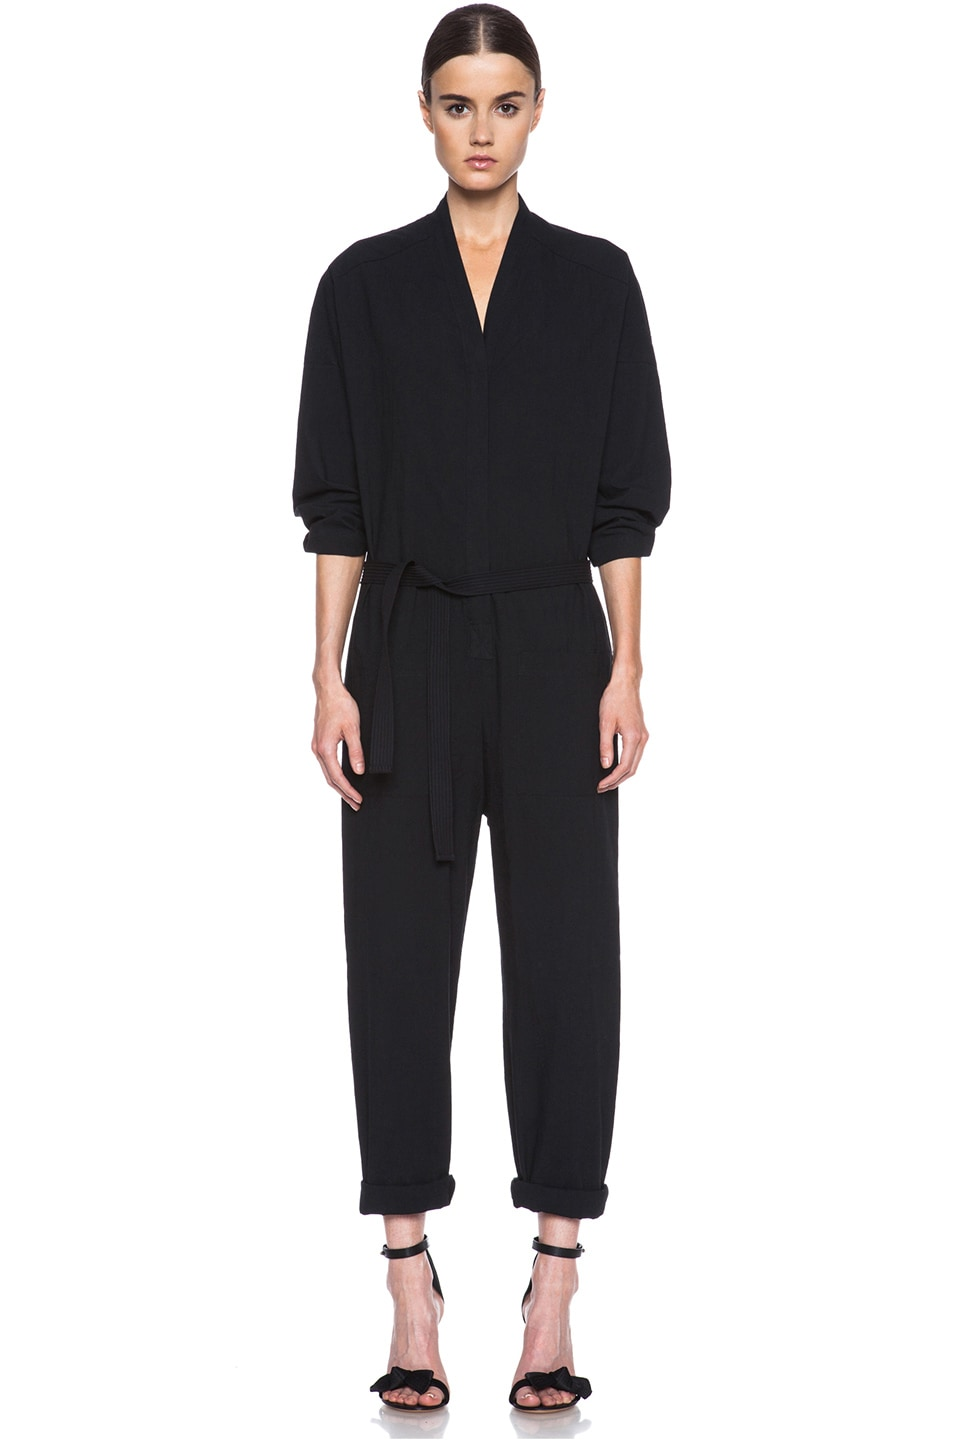 46e1aebf2d96 Image 1 of Isabel Marant Etoile Ilona Cotton Jumpsuit in Black